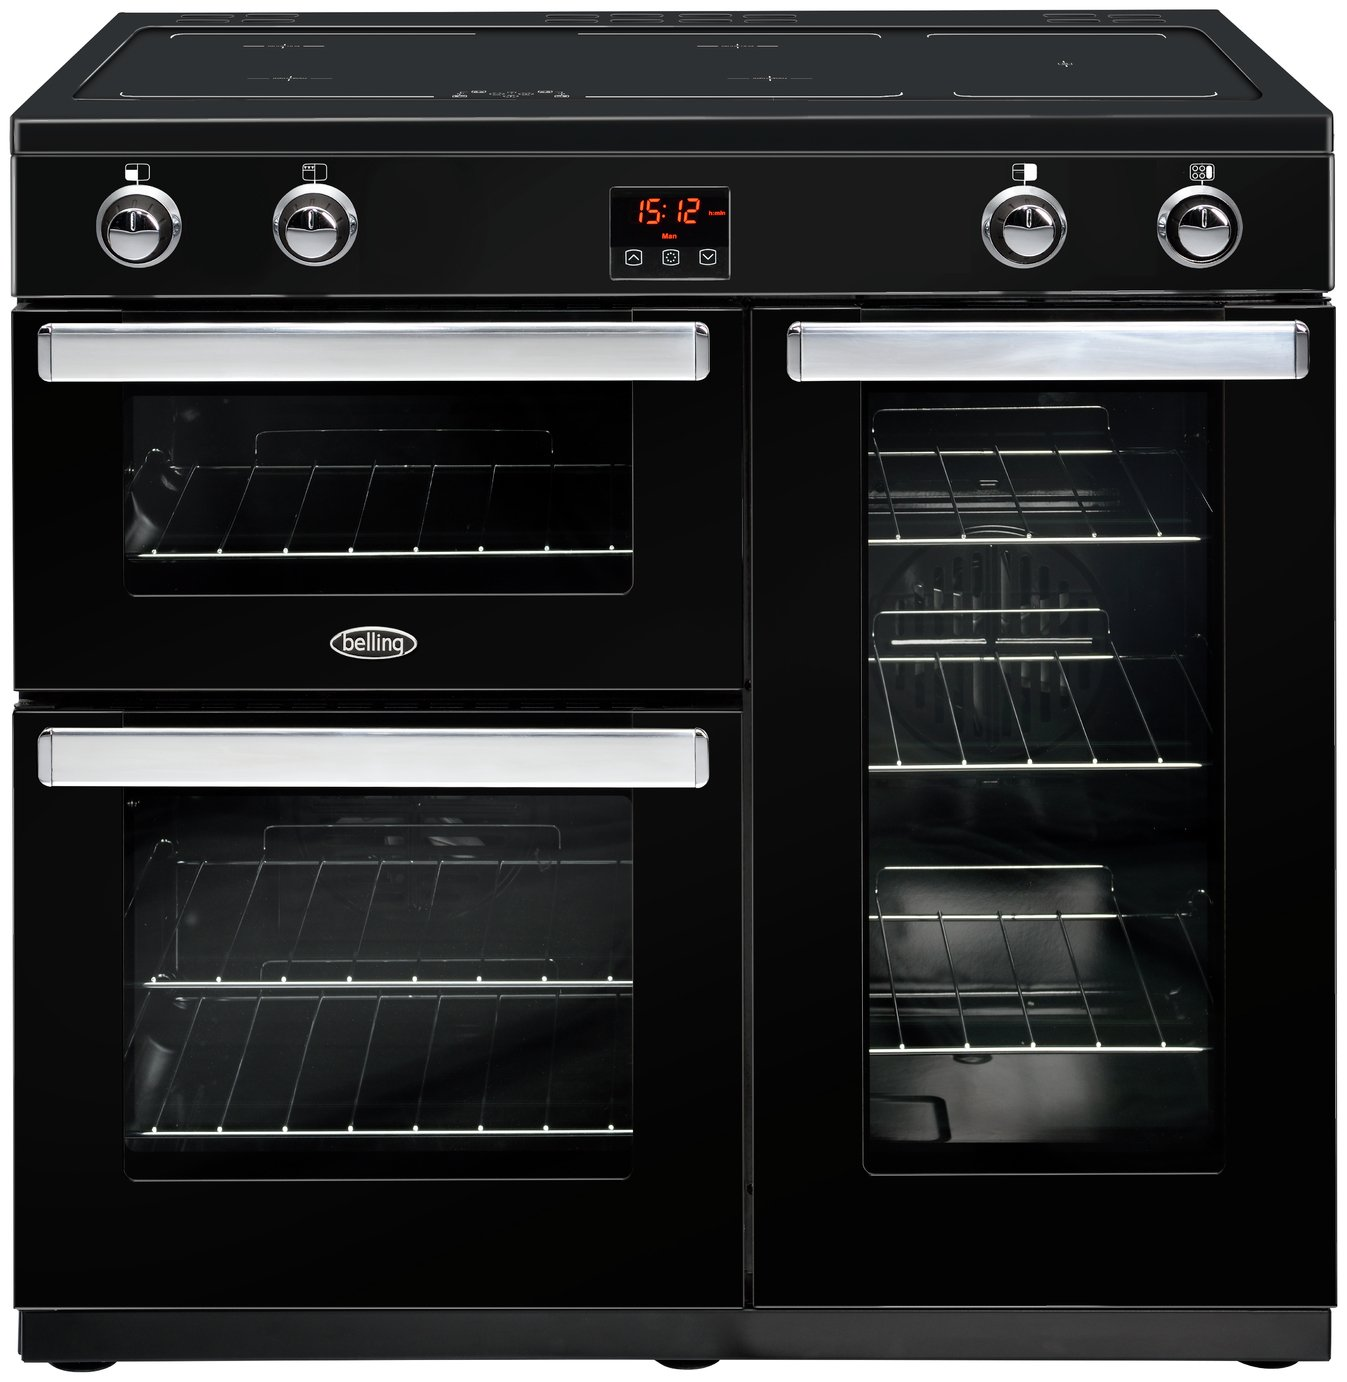 Belling Cookcentre 90Ei 90cm Electric Range Cooker - Black